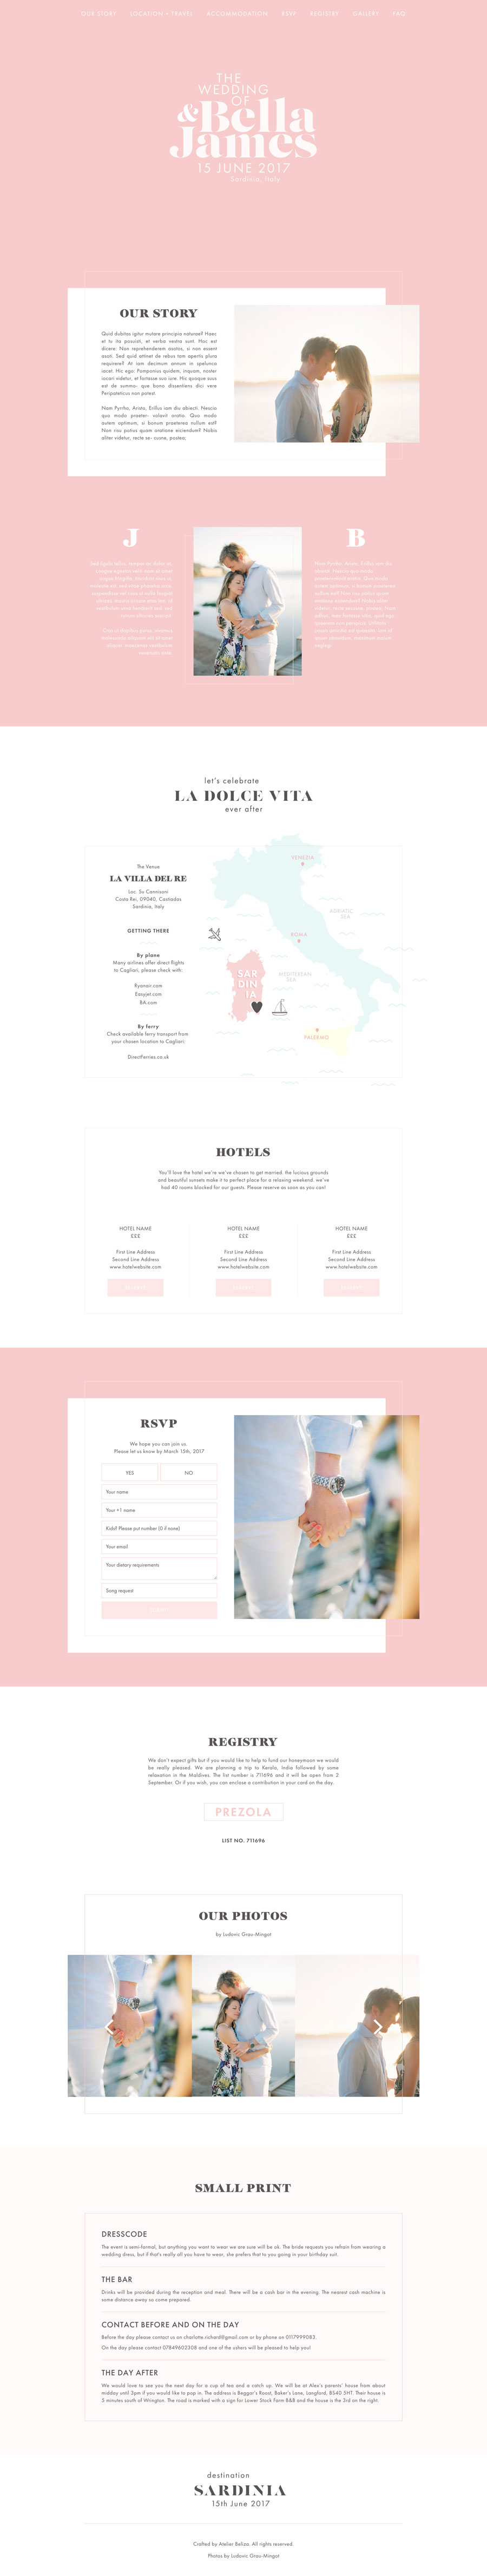 Sardinia is a wedding website template that includes couples' engagement photos, wedding location map, online RSVP form and wedding venue info.